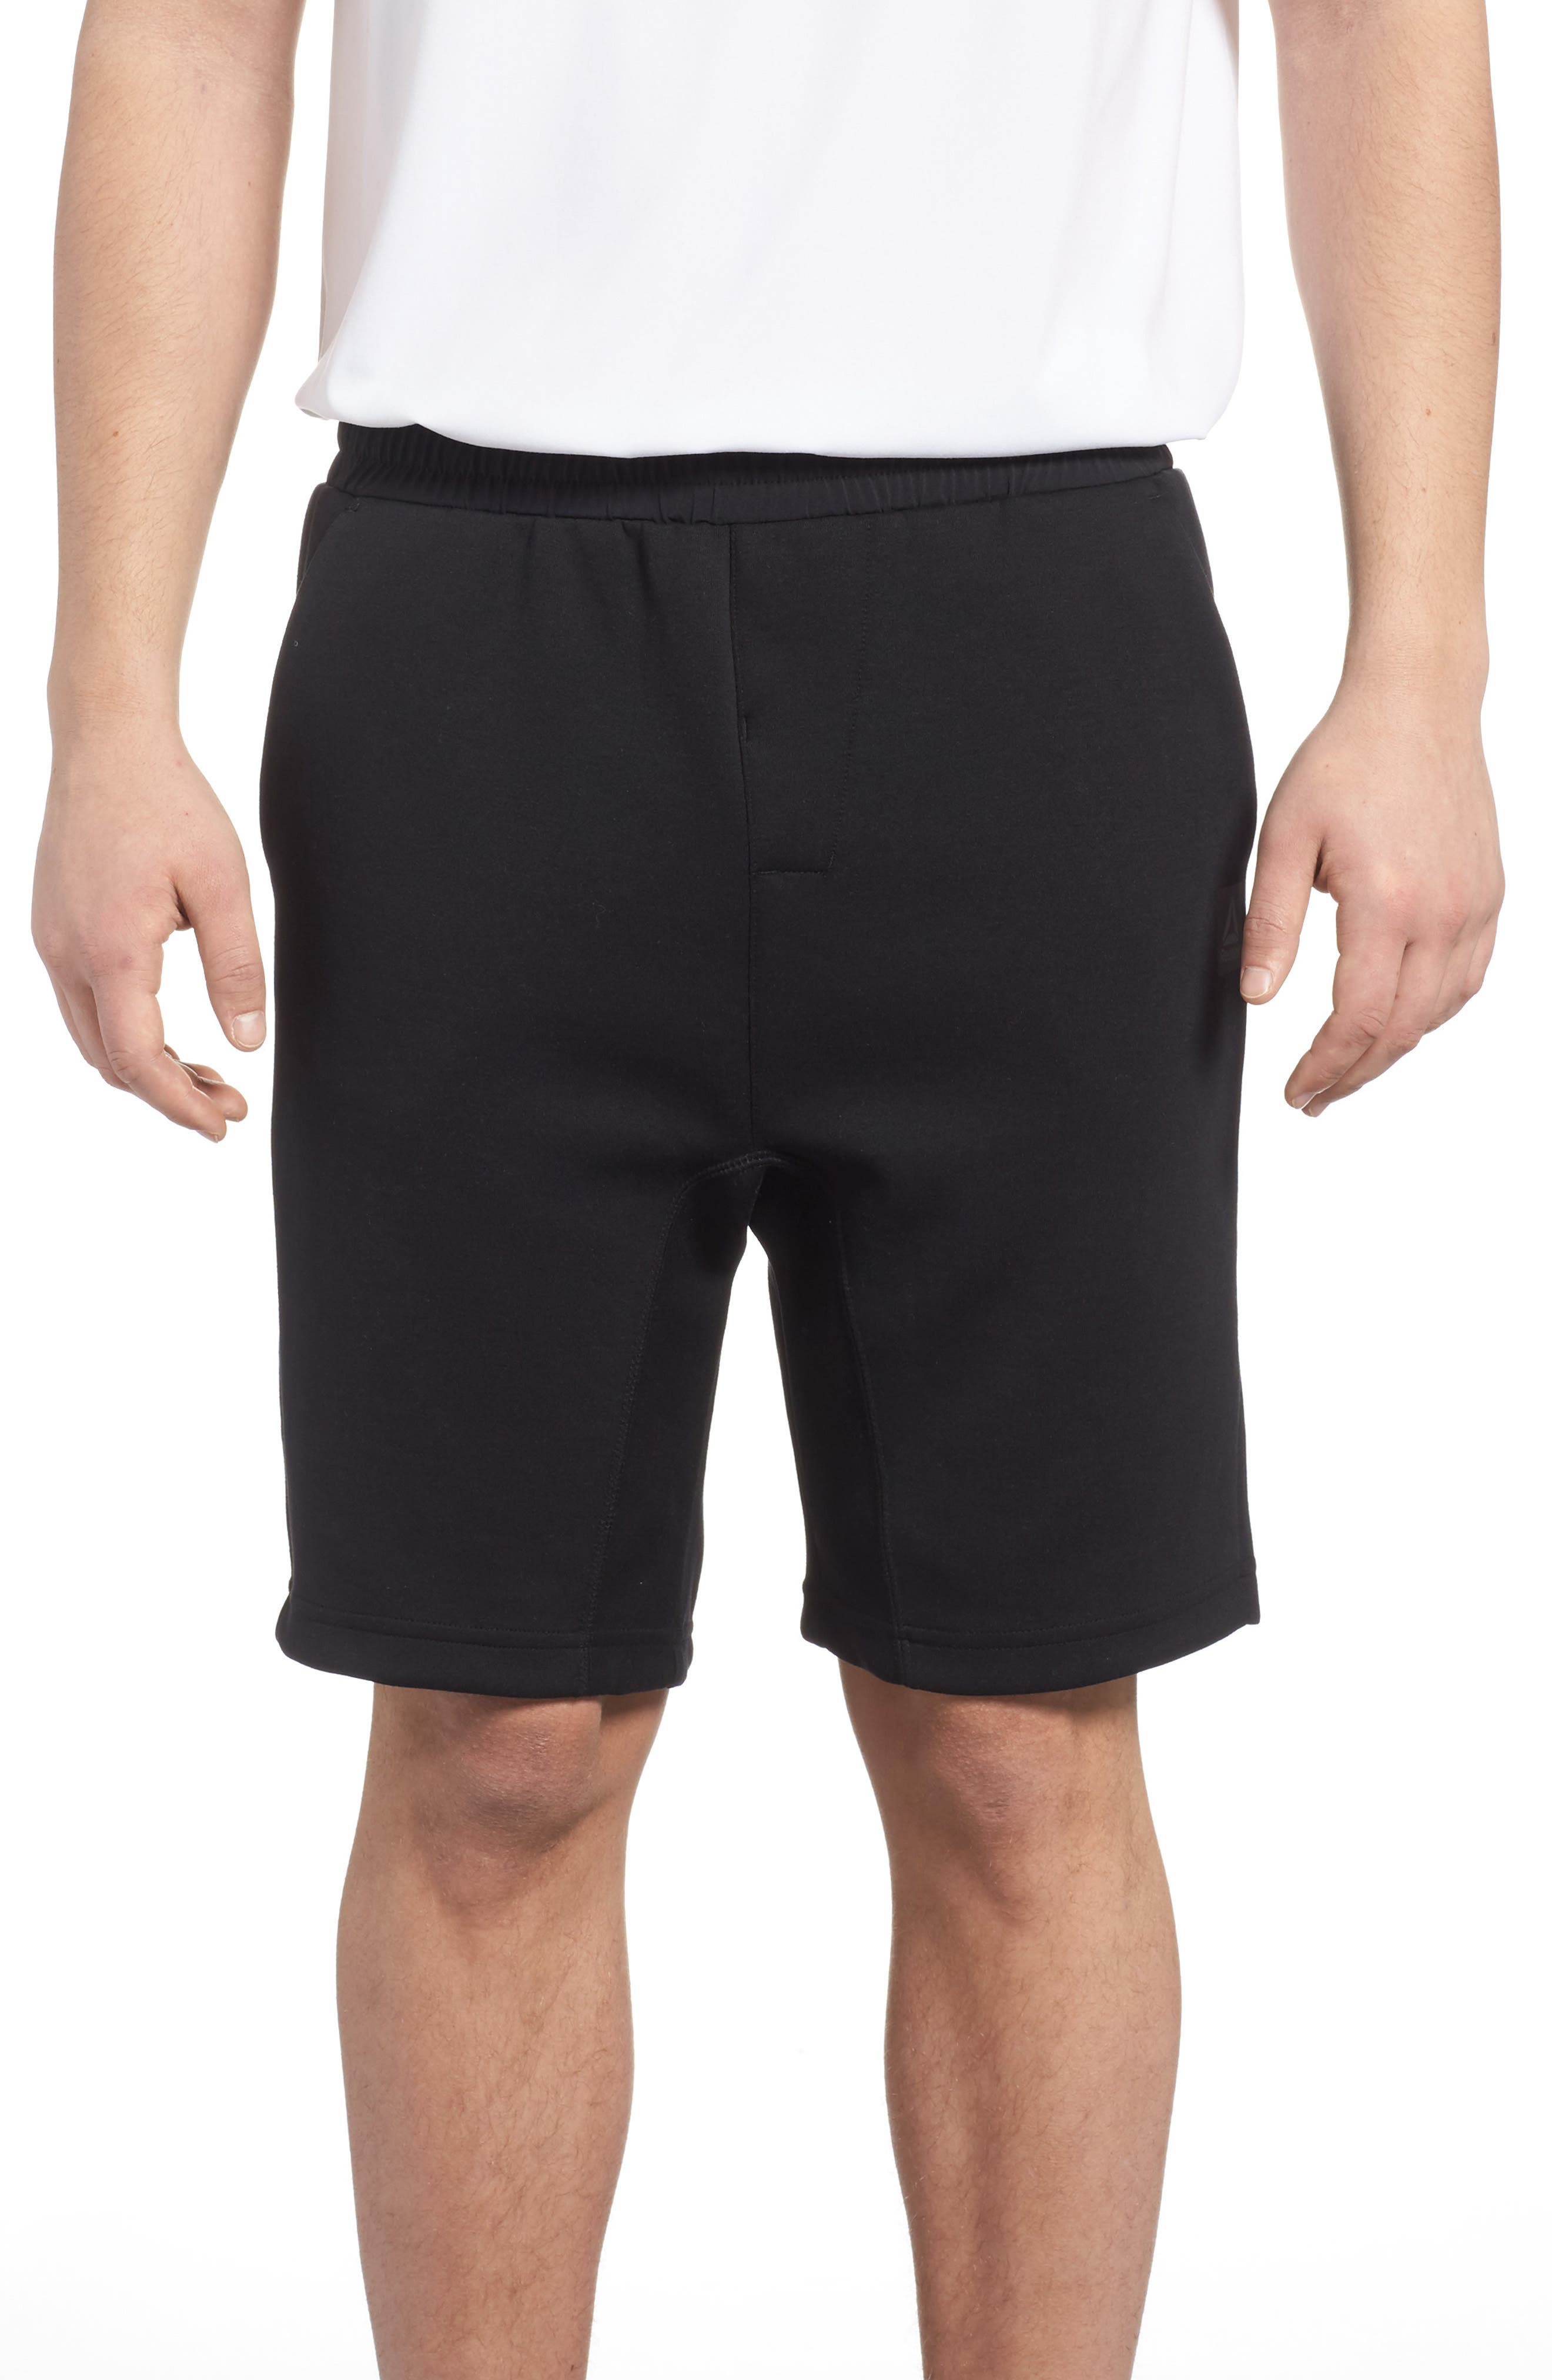 TS Knit Shorts,                         Main,                         color, Black